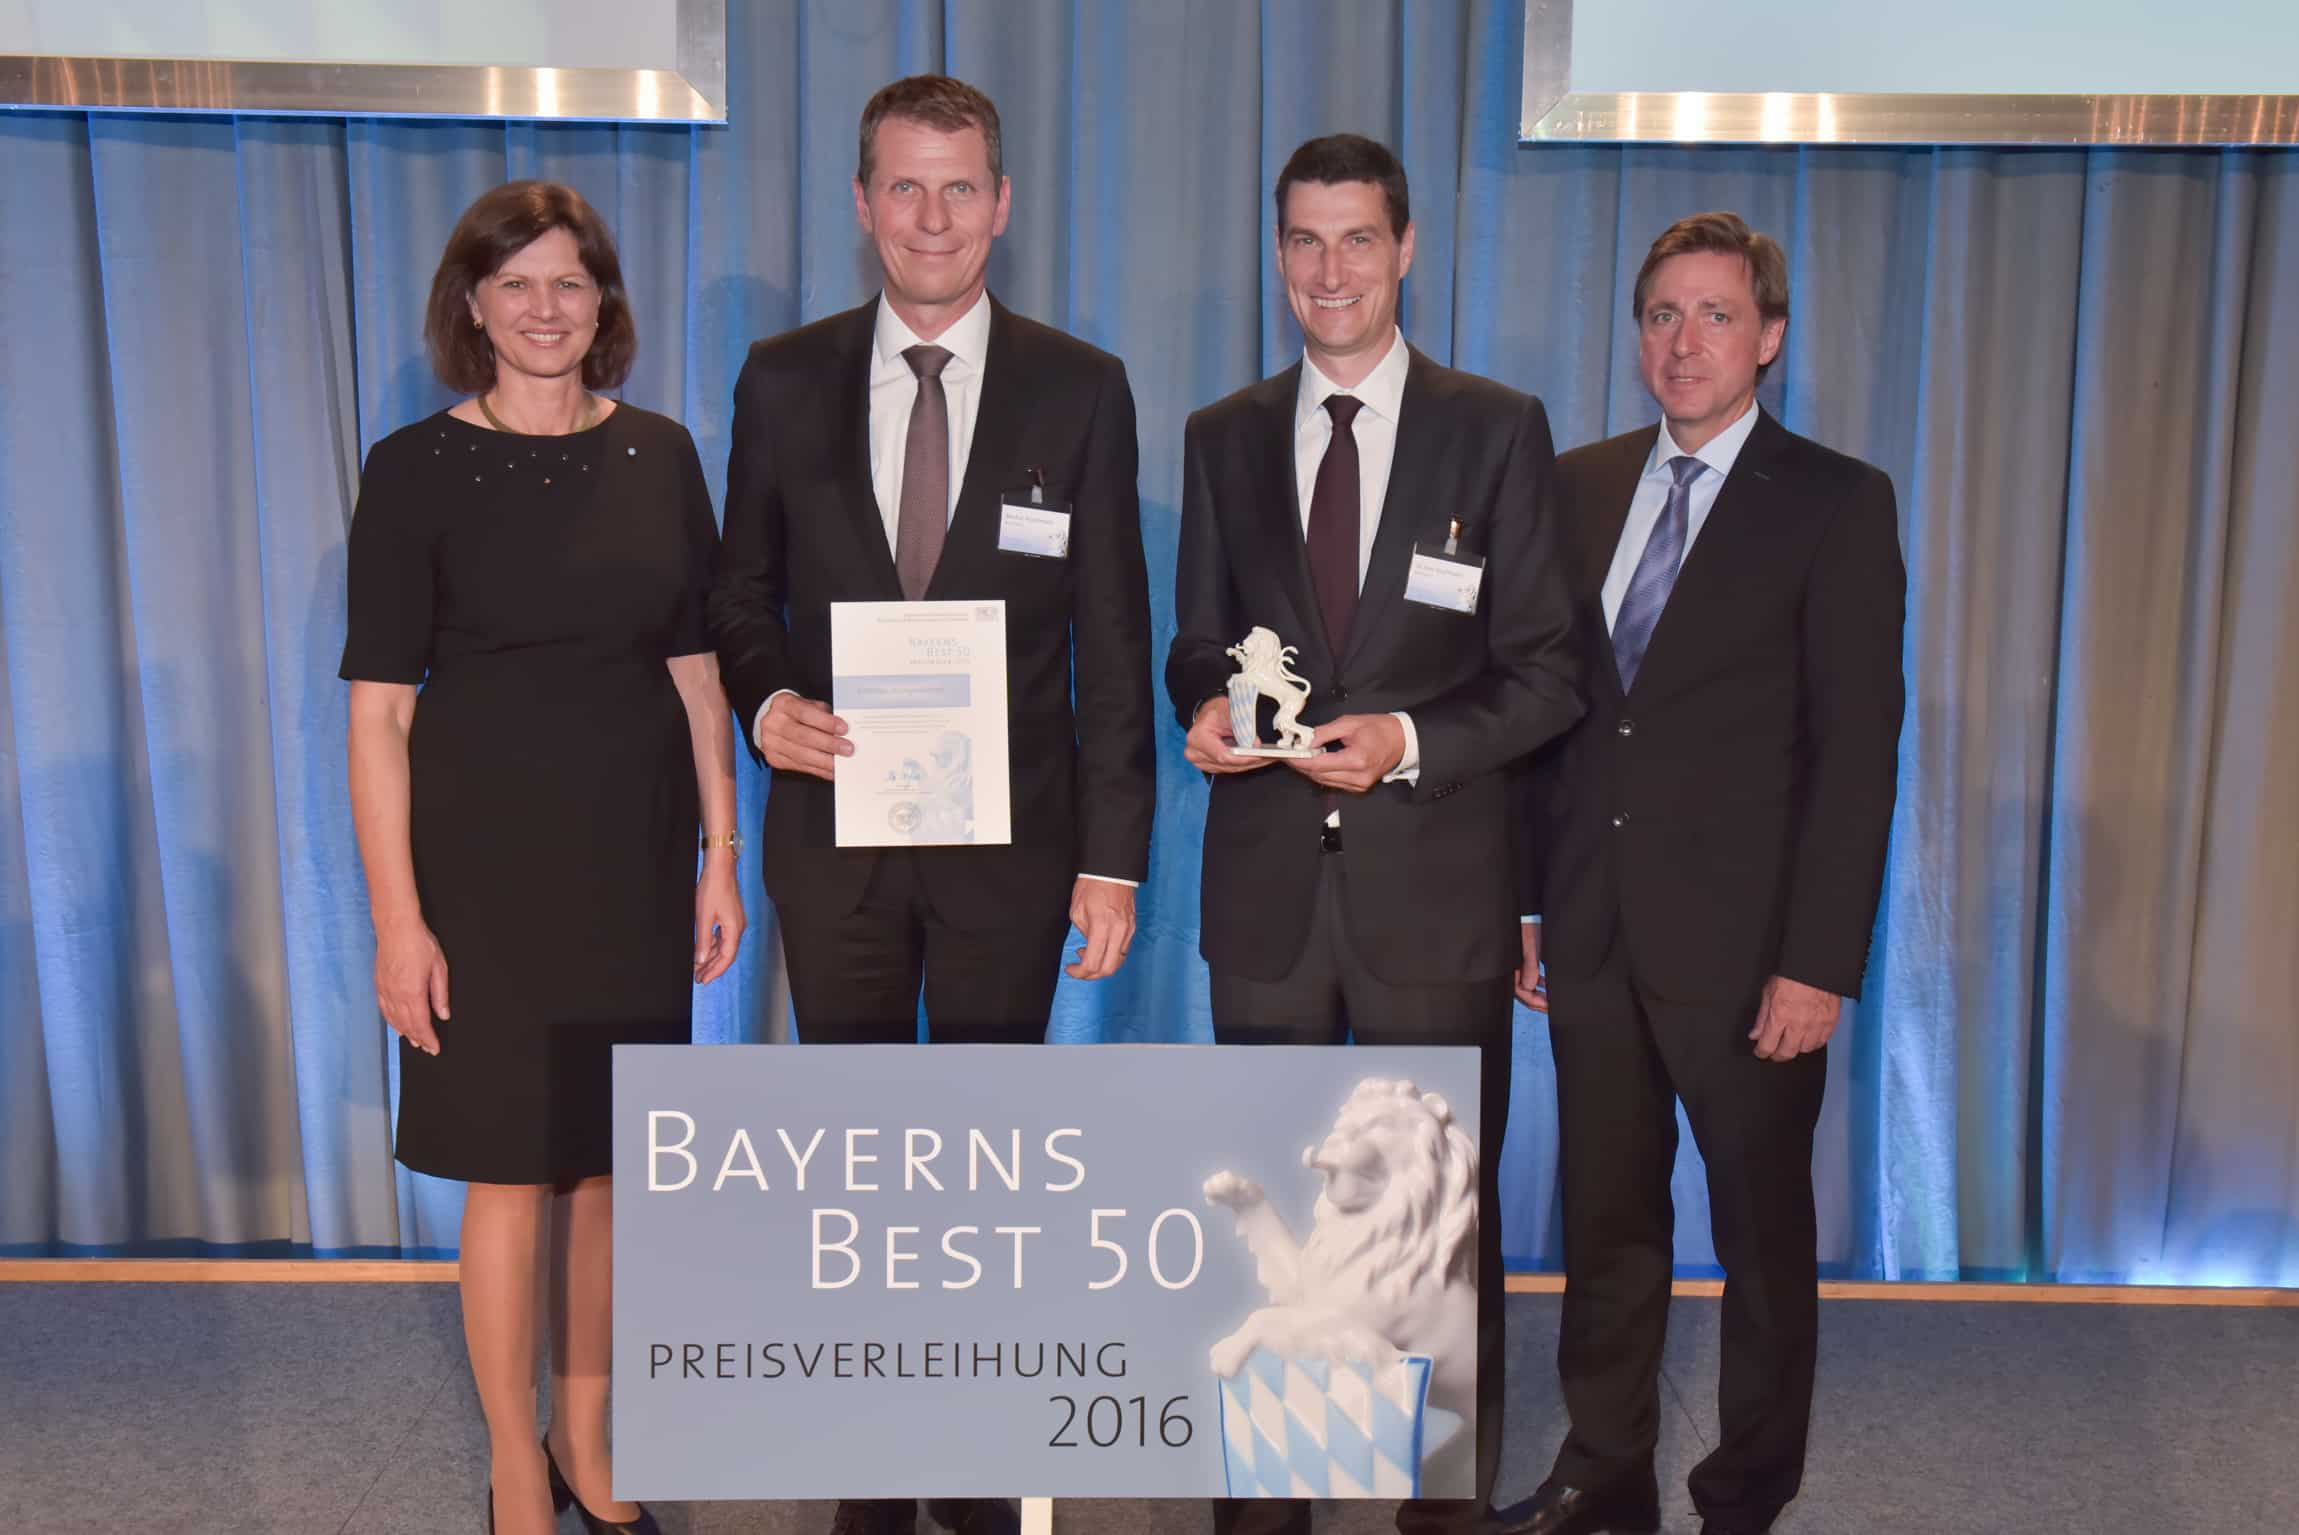 Rational Küchen Landsberg Bayerns Best 50 Rational Dabei Foodservice Equipment News